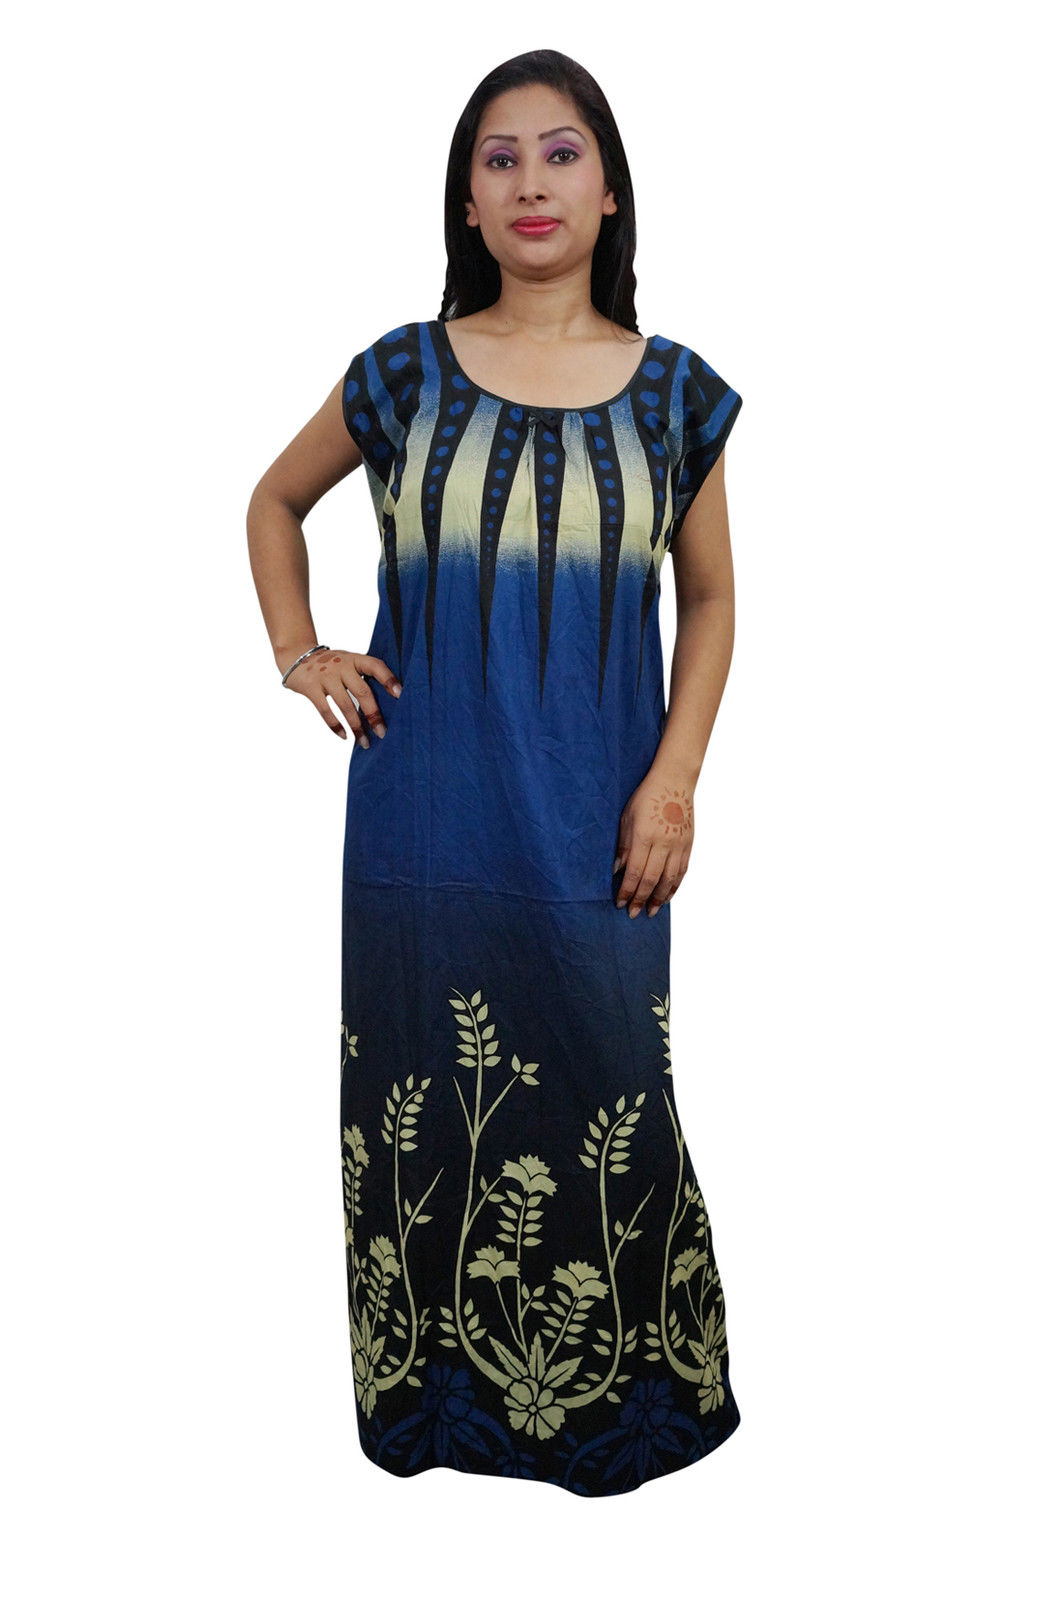 3fee9a98a2 Enjoy your sleep time with this printed night wear gown for women from  Indiatrendzs. Made from Cotton